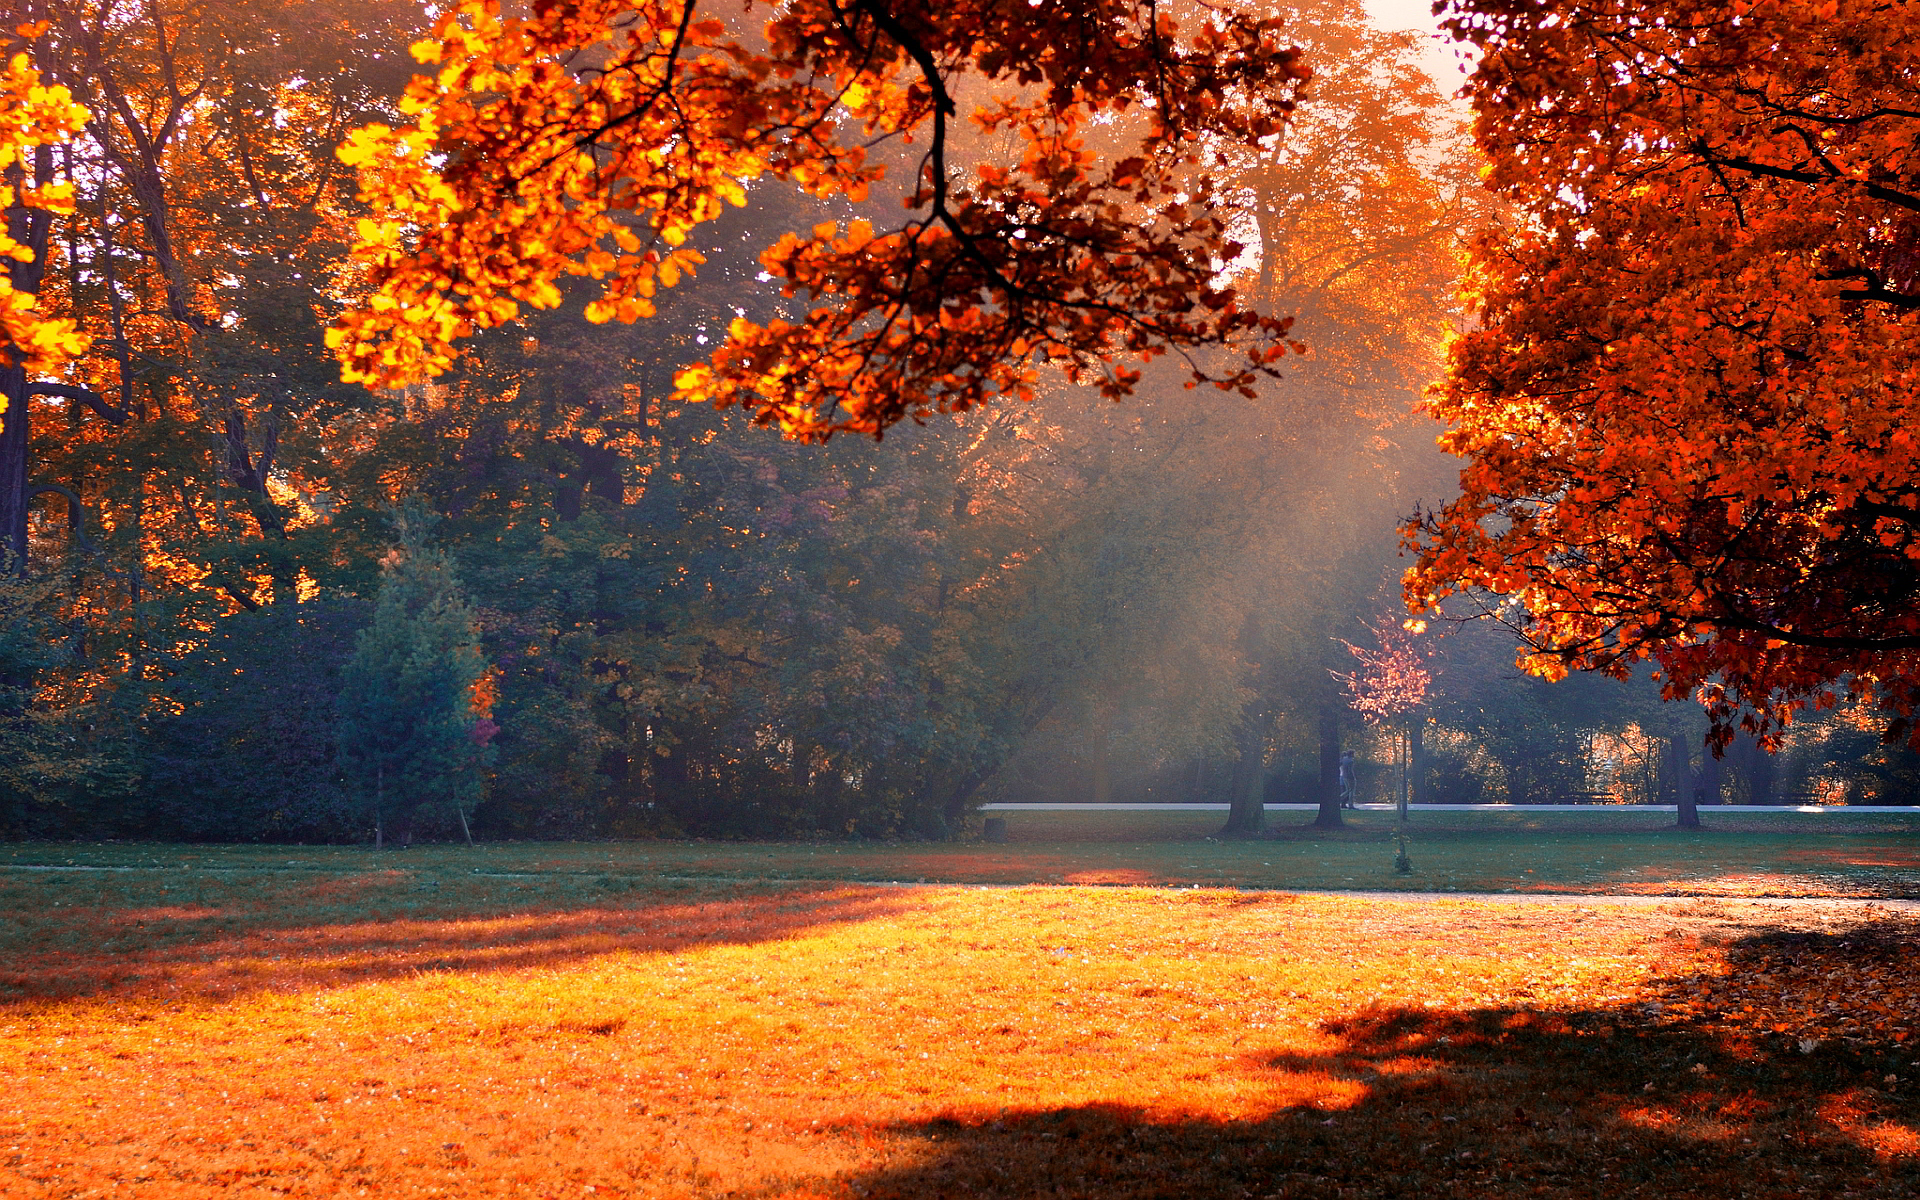 Autumn park sunshine